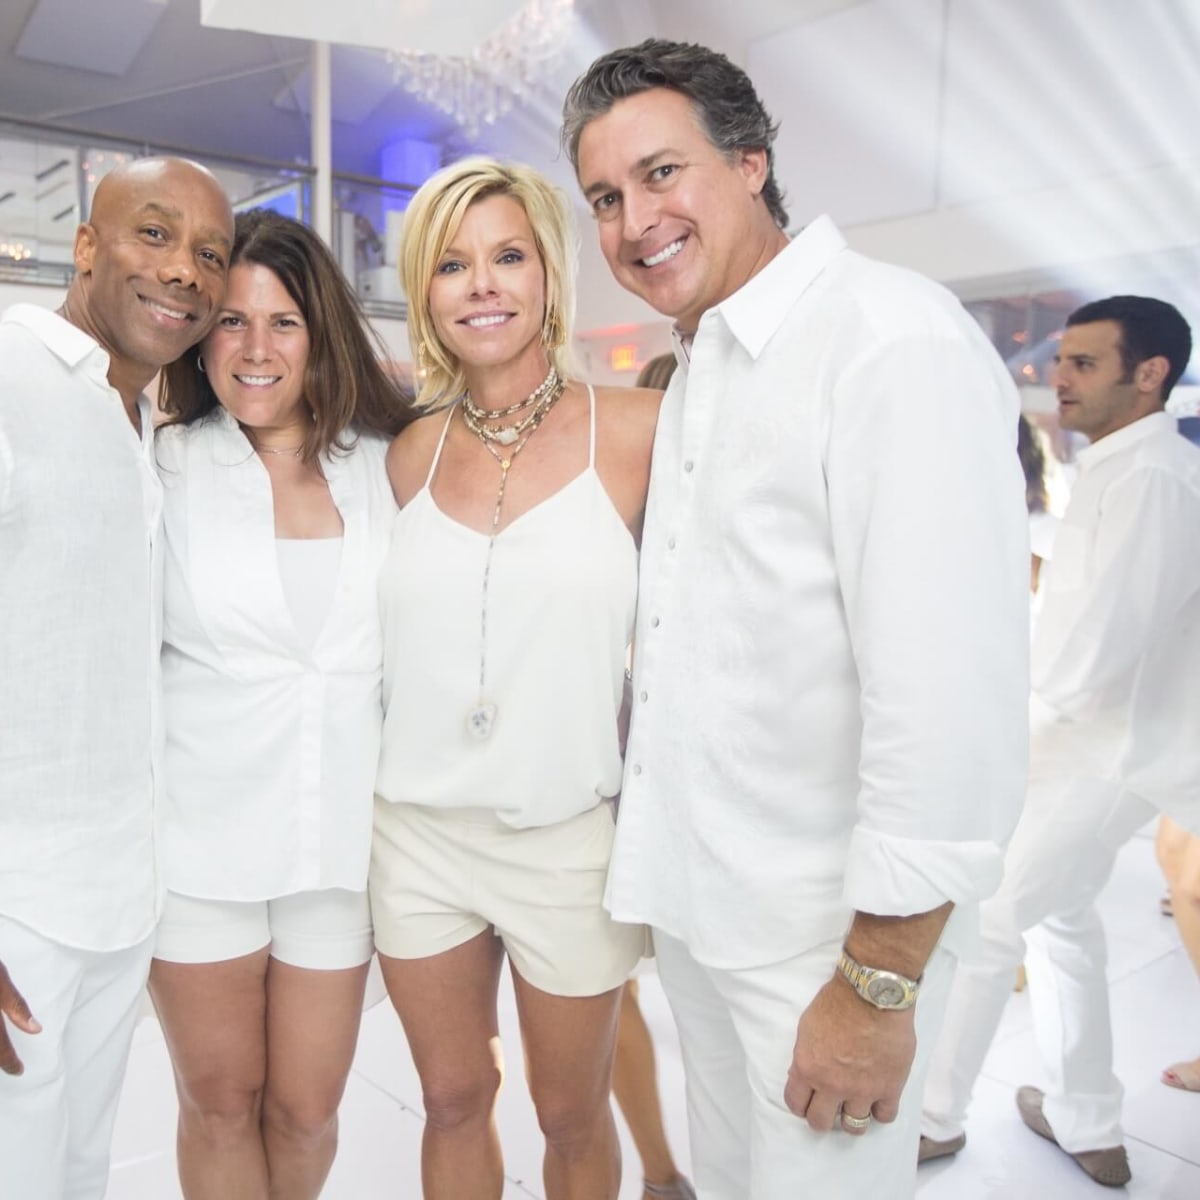 Loya Texans White Out party, 9/16 Sean Wright, Shelley Wright, Mary Alice Haest, Barry Haest